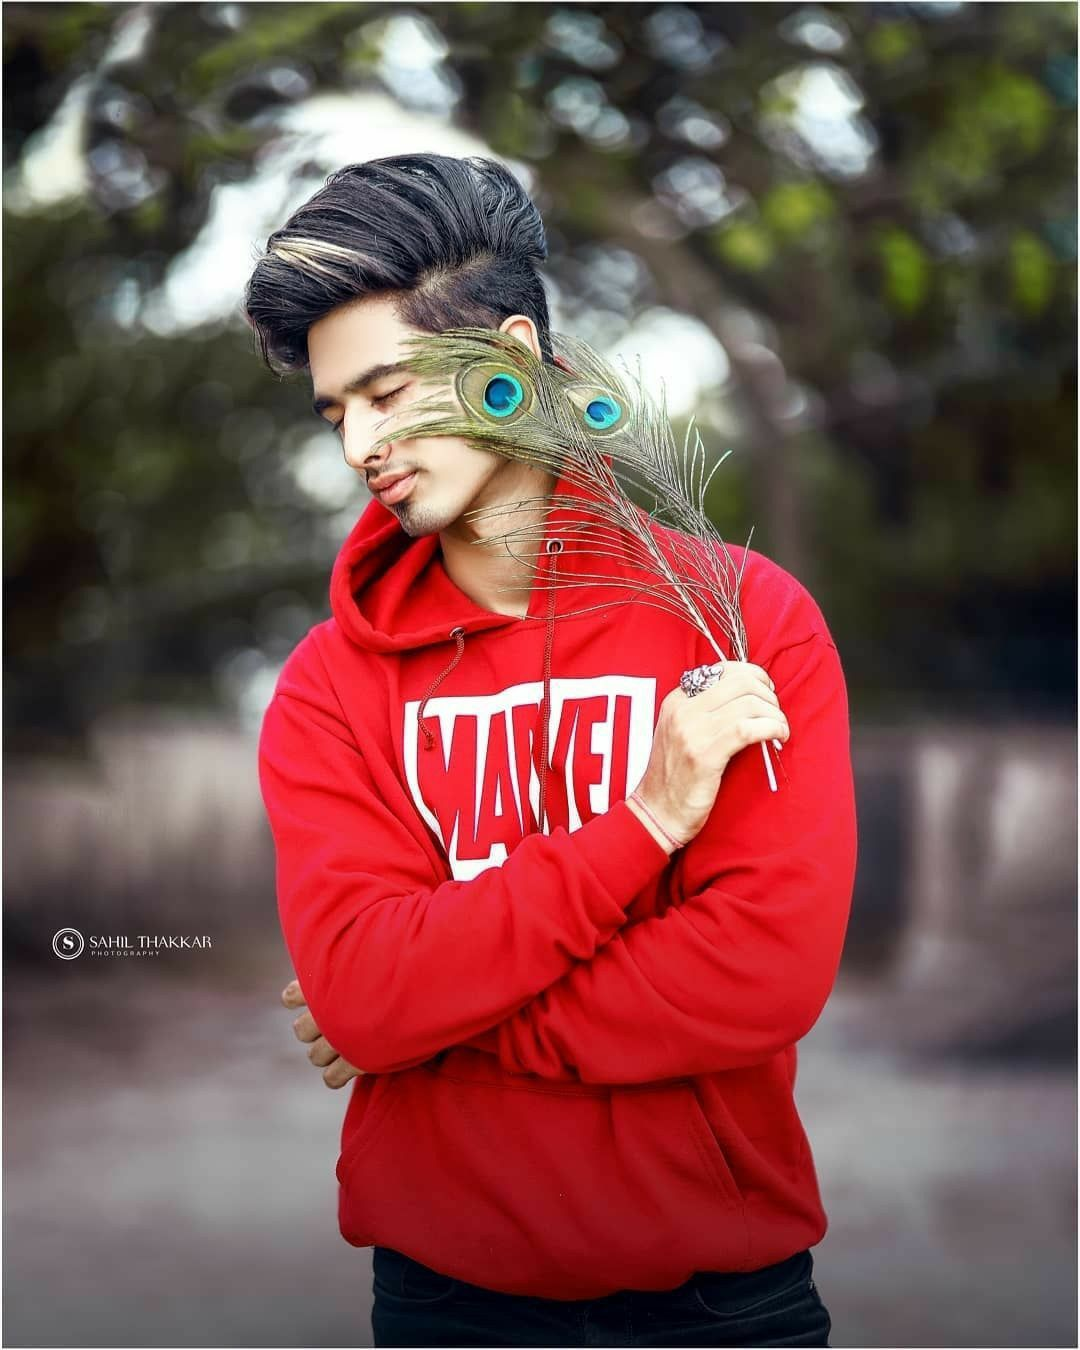 Whatsapp Dp For Boys Boy Photography Poses Boy Poses Girly Pictures